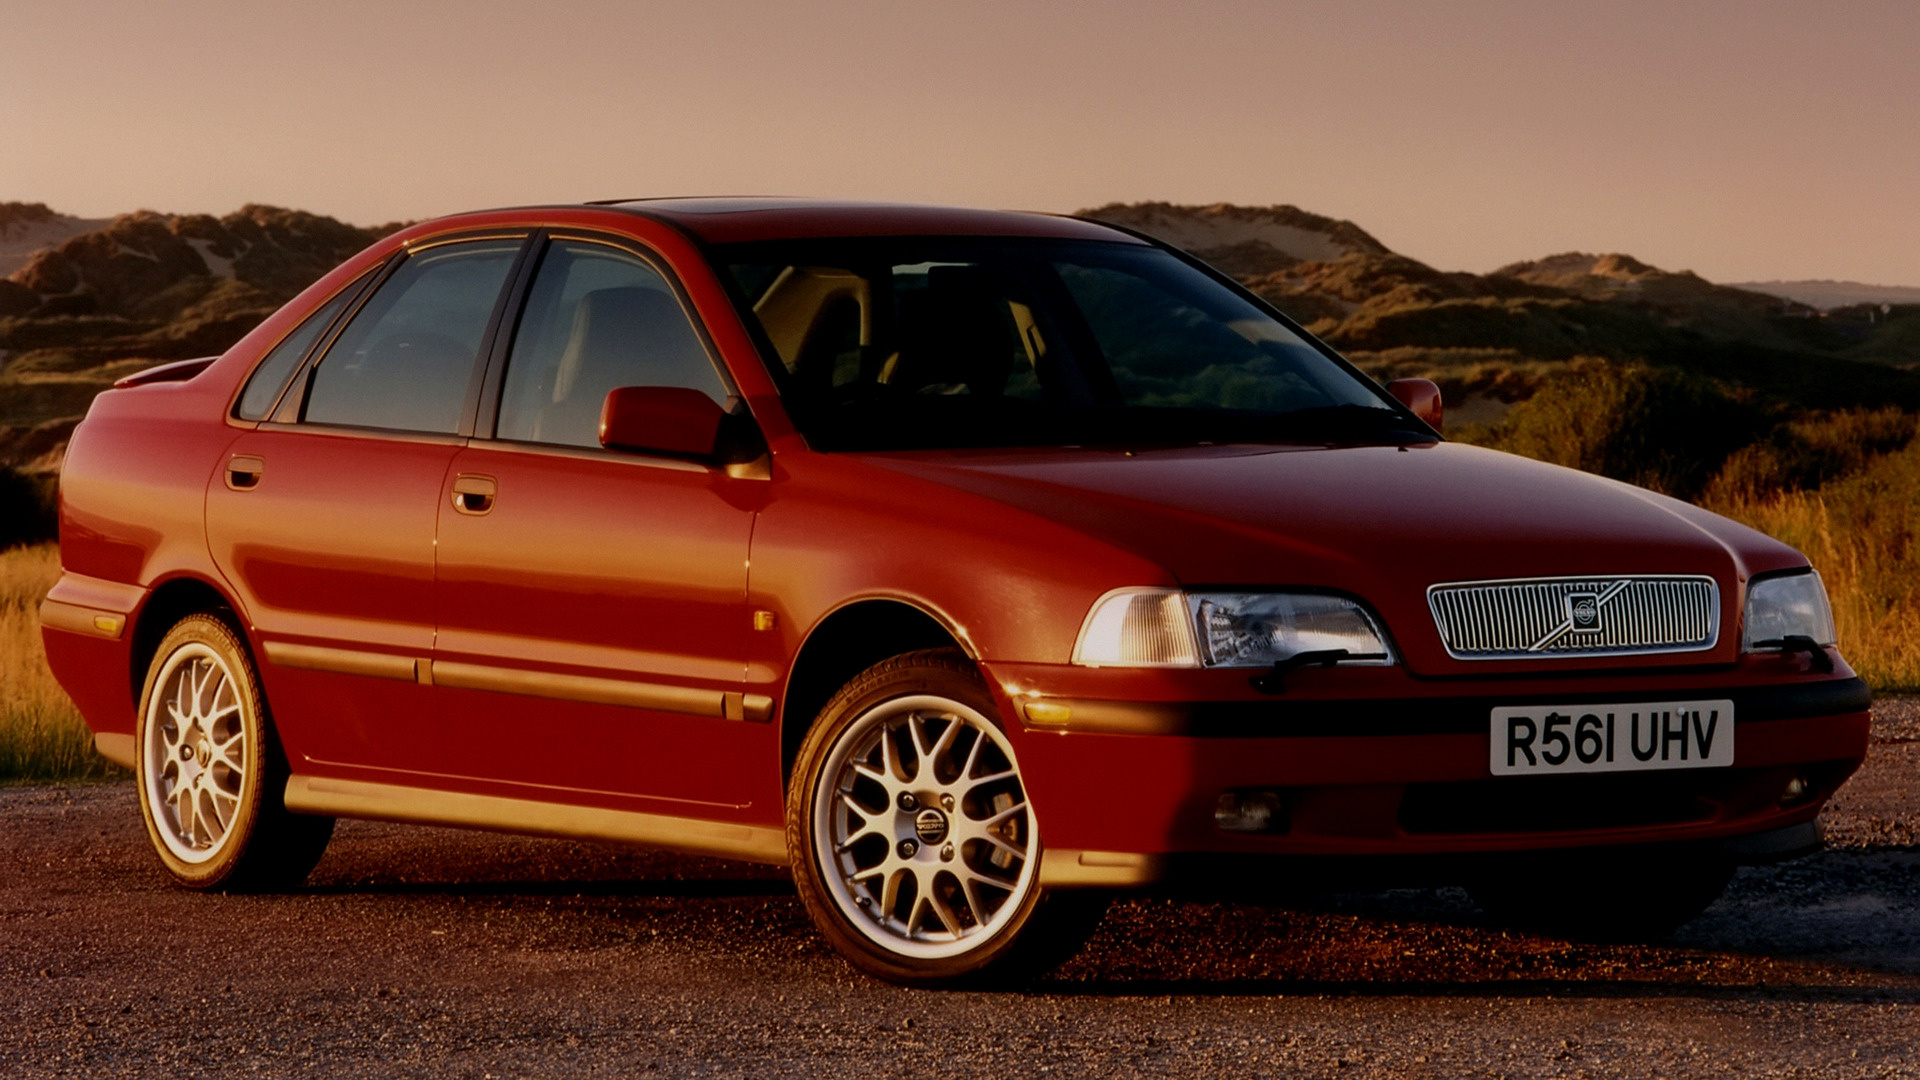 Volvo S40 1996 UK Wallpapers and HD Images  Car Pixel